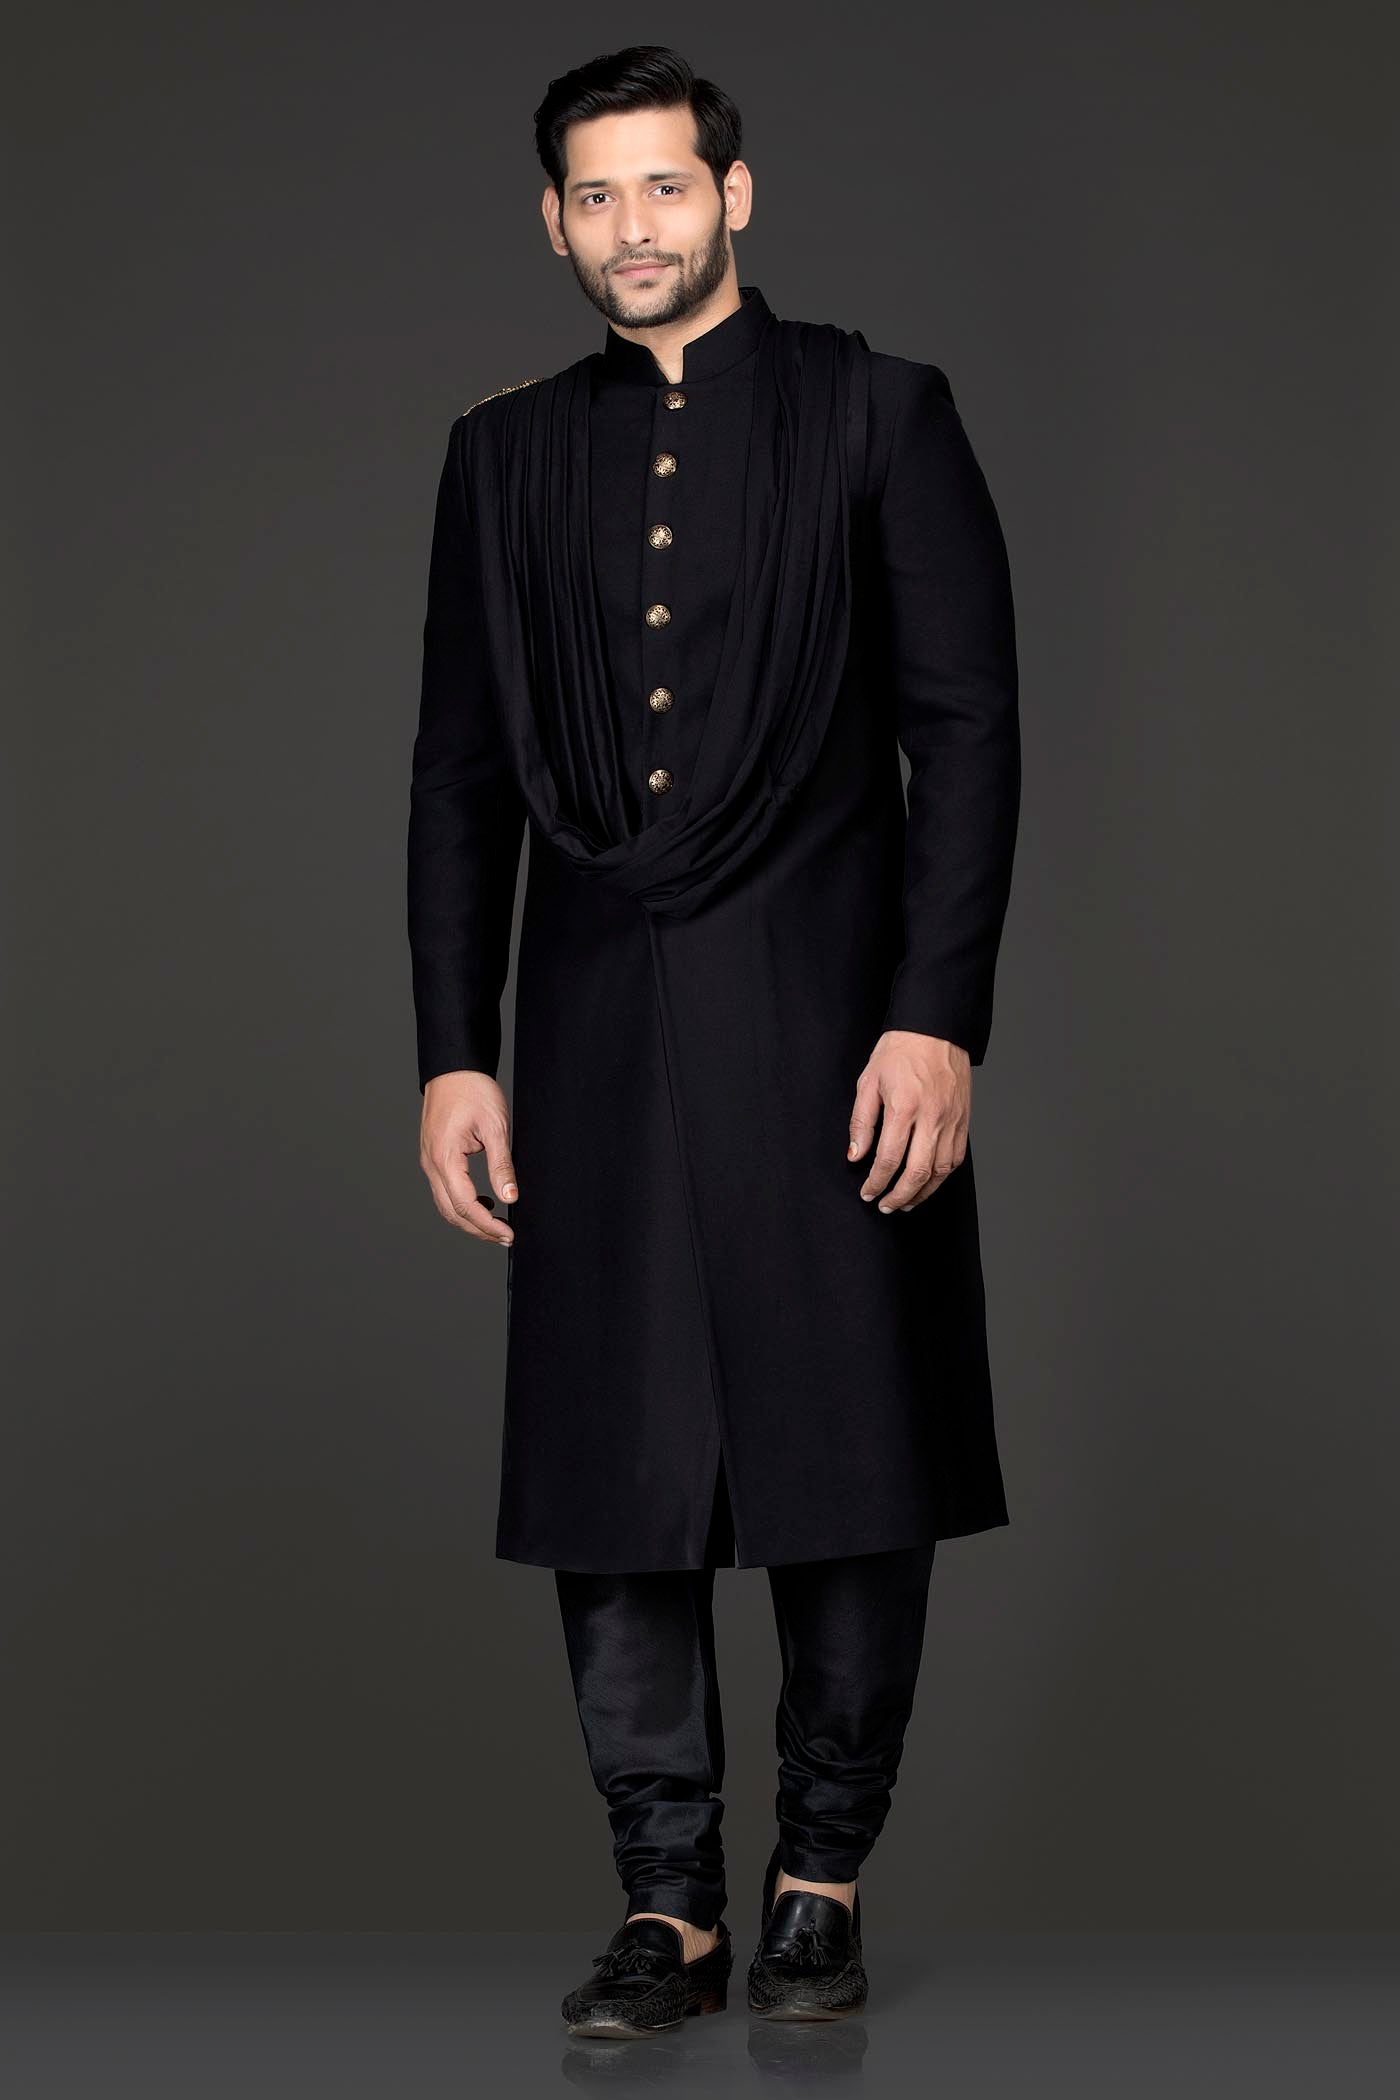 Black Colour Suiting Fabric Long Jacket With Attached Shoulder Lycra Drape And A Gold Tassel Brooch On The Shoulder Paired With Black Chudidar